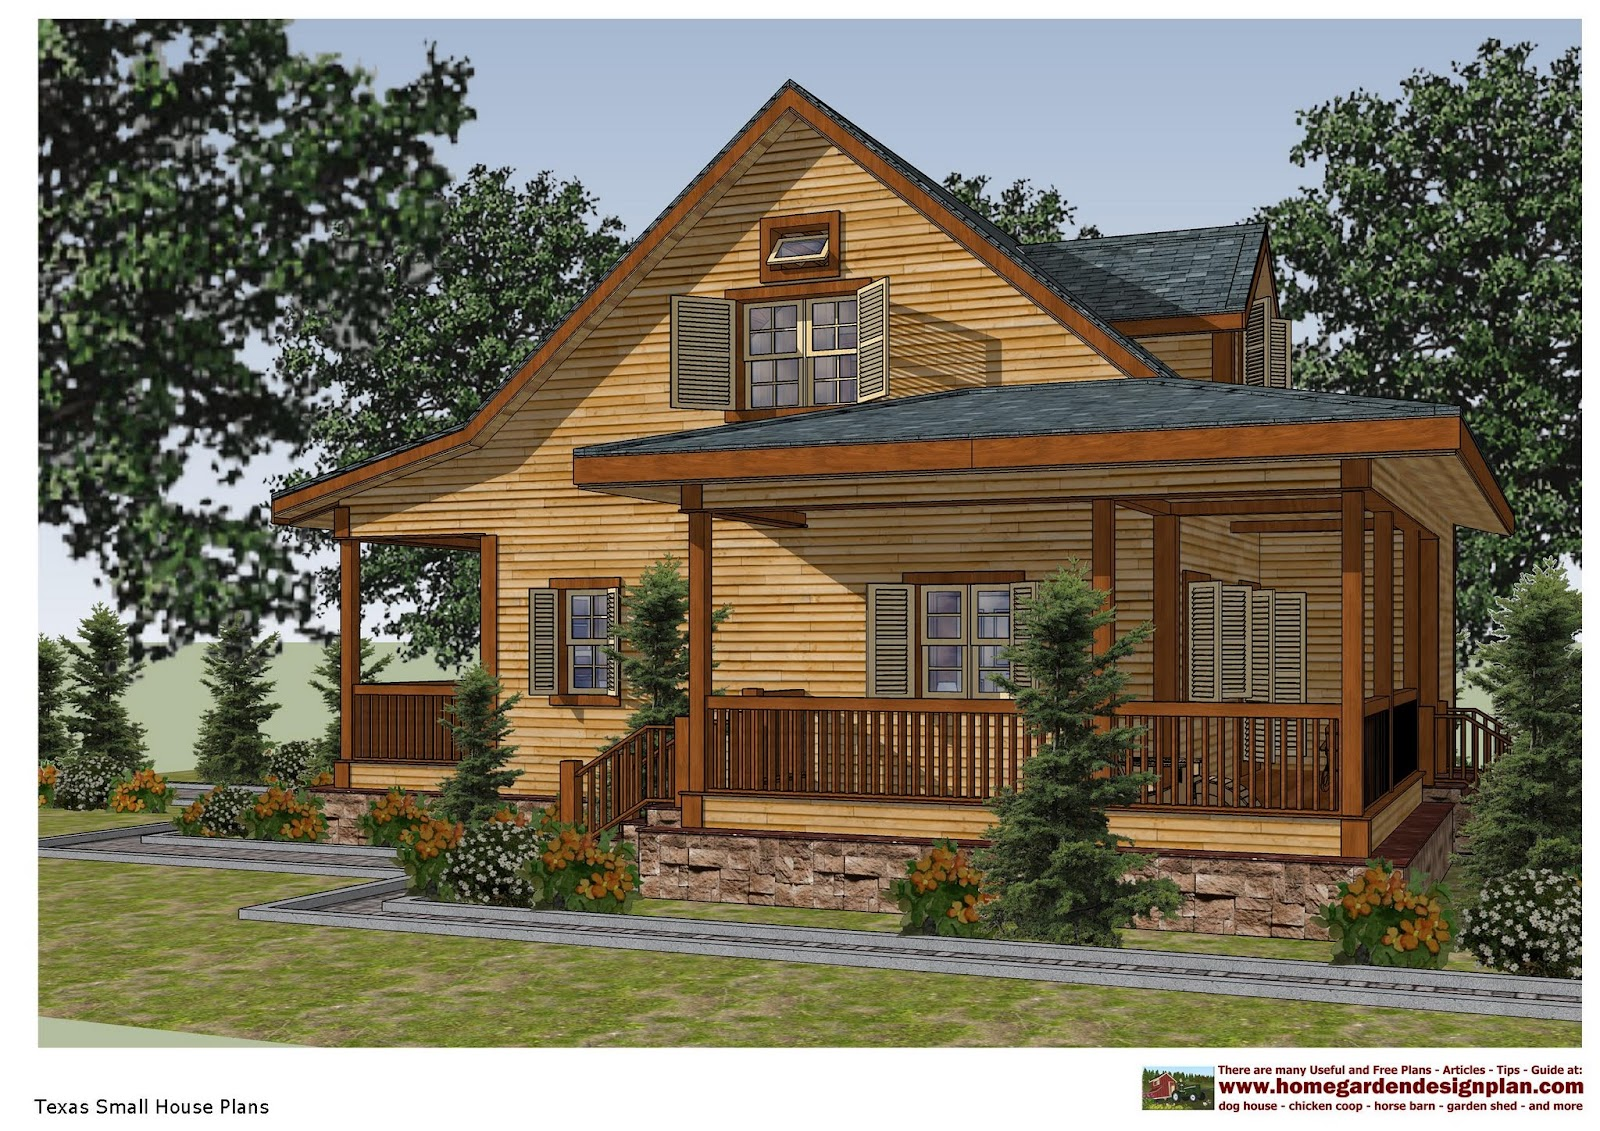 Home Garden Plans Sh100 Small House Plans Small House